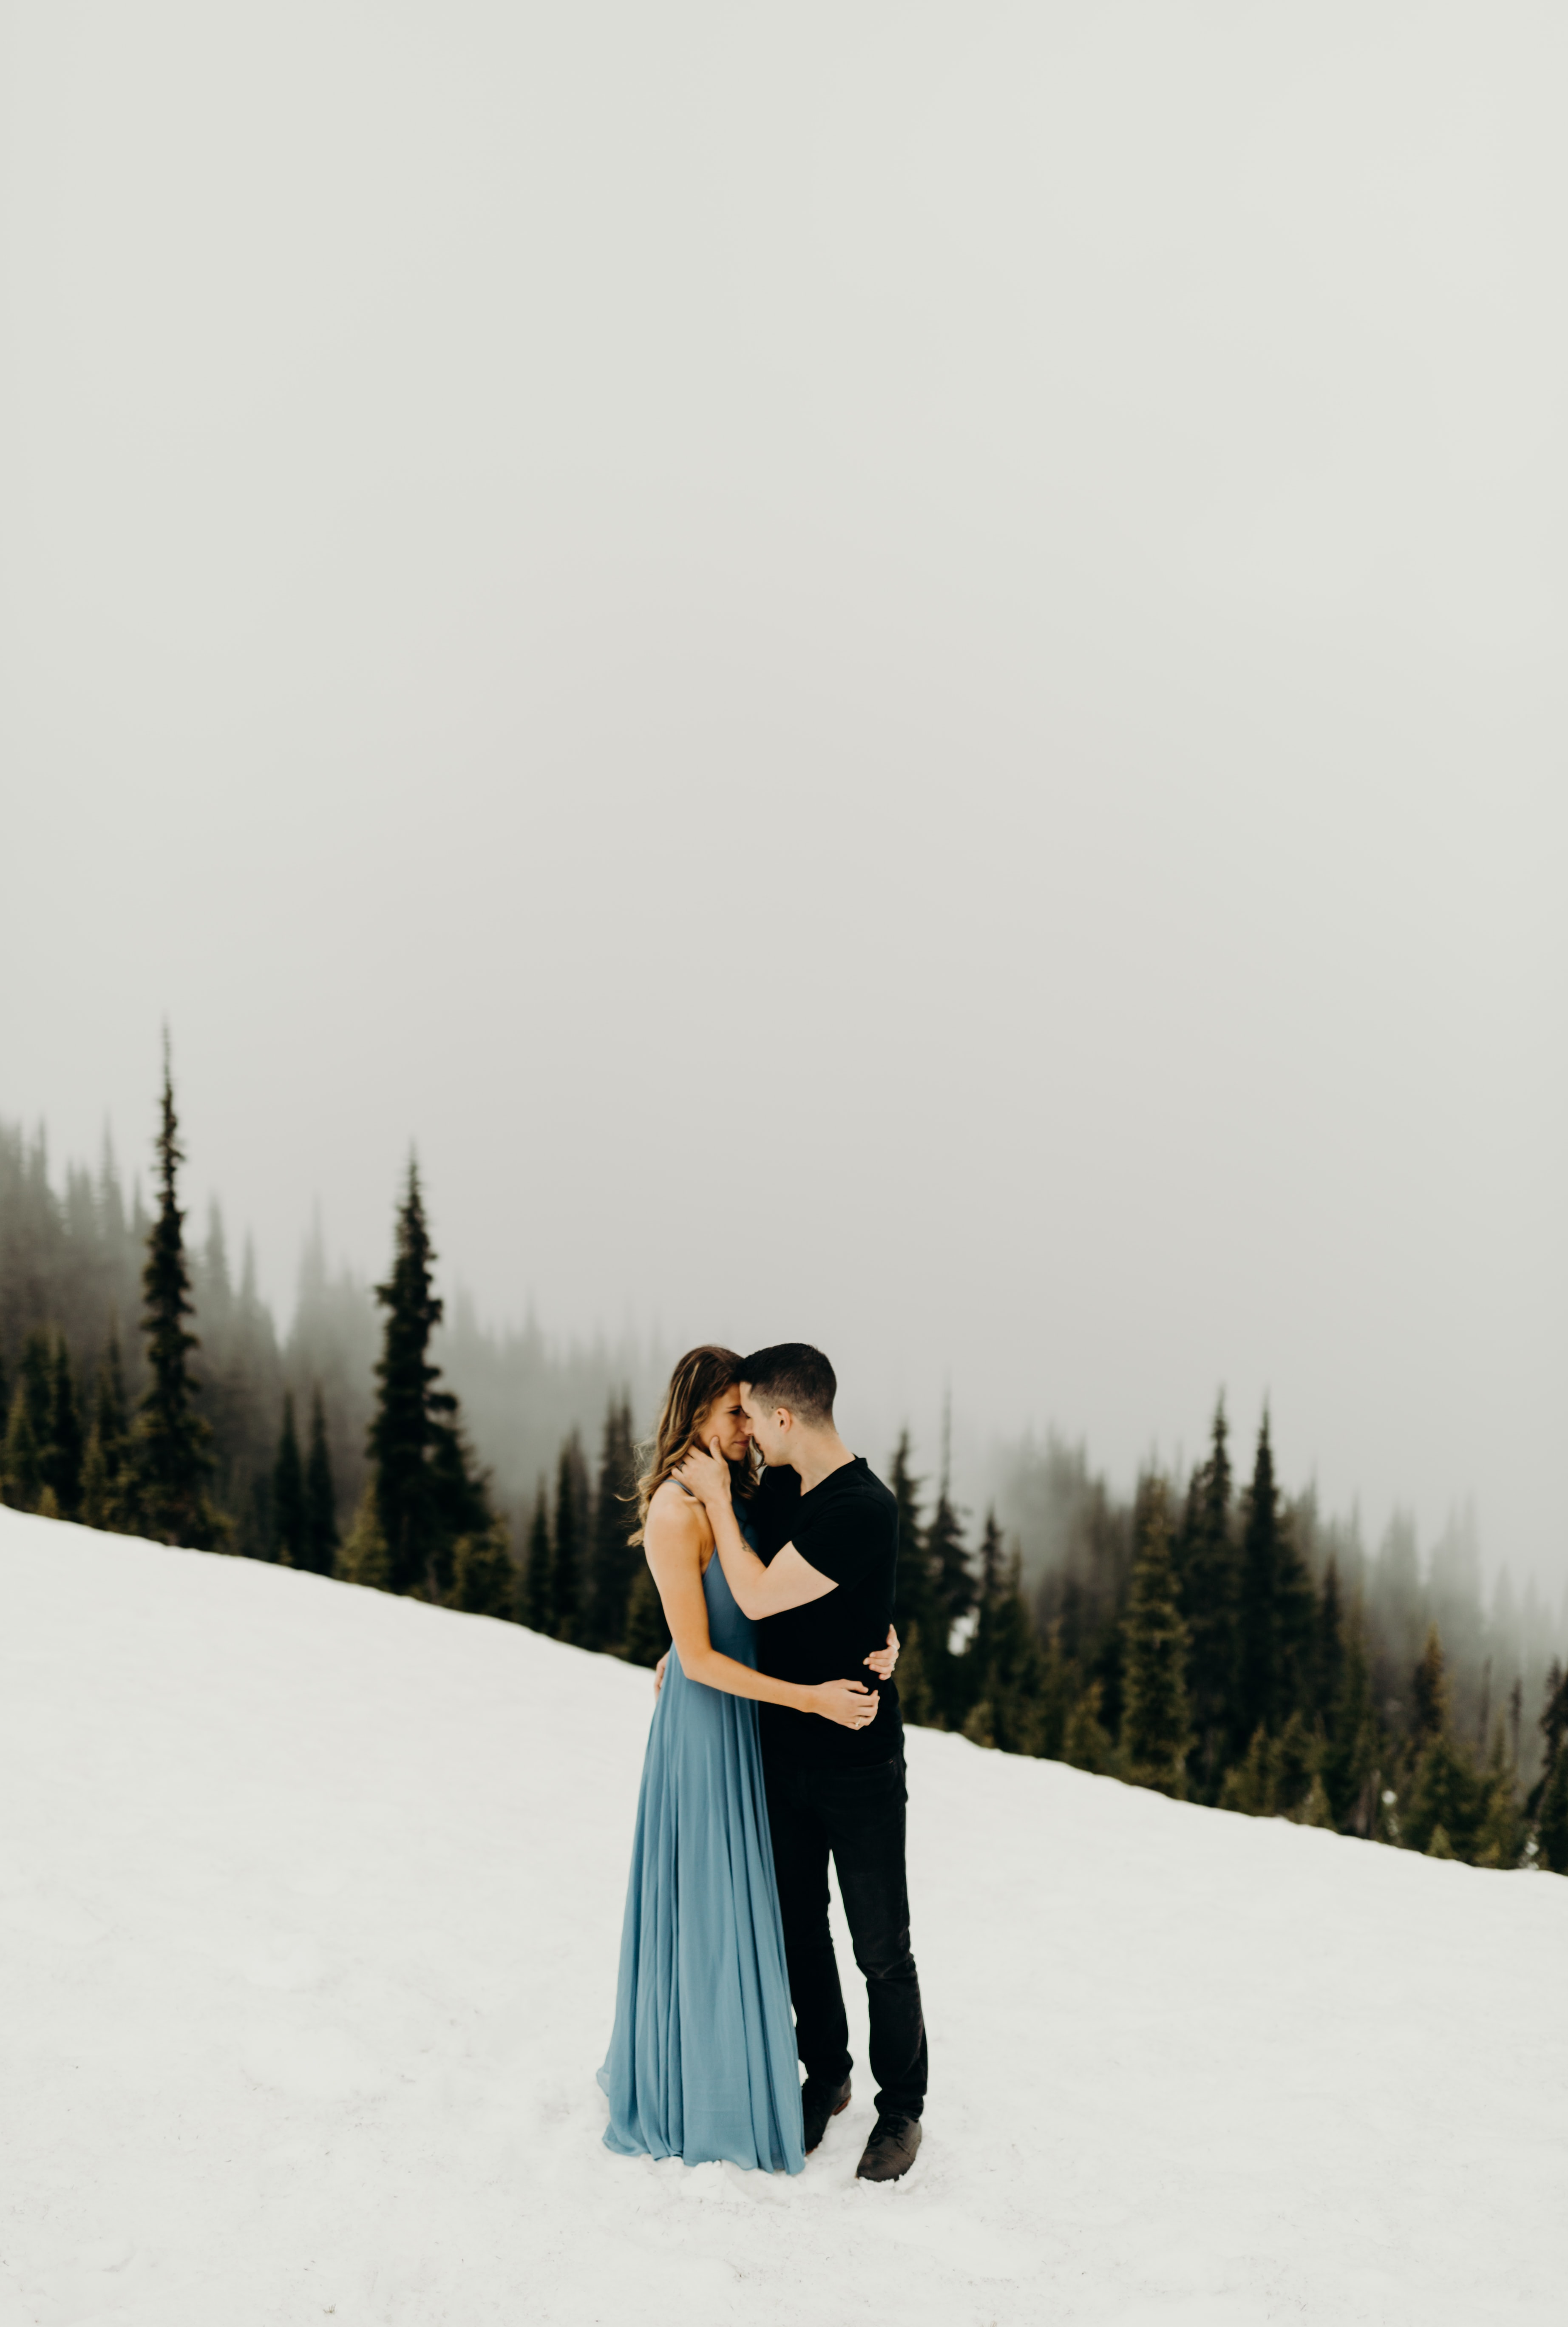 woman in teal dress and man in black shirt performing kiss on top of snowy mountain during daytime